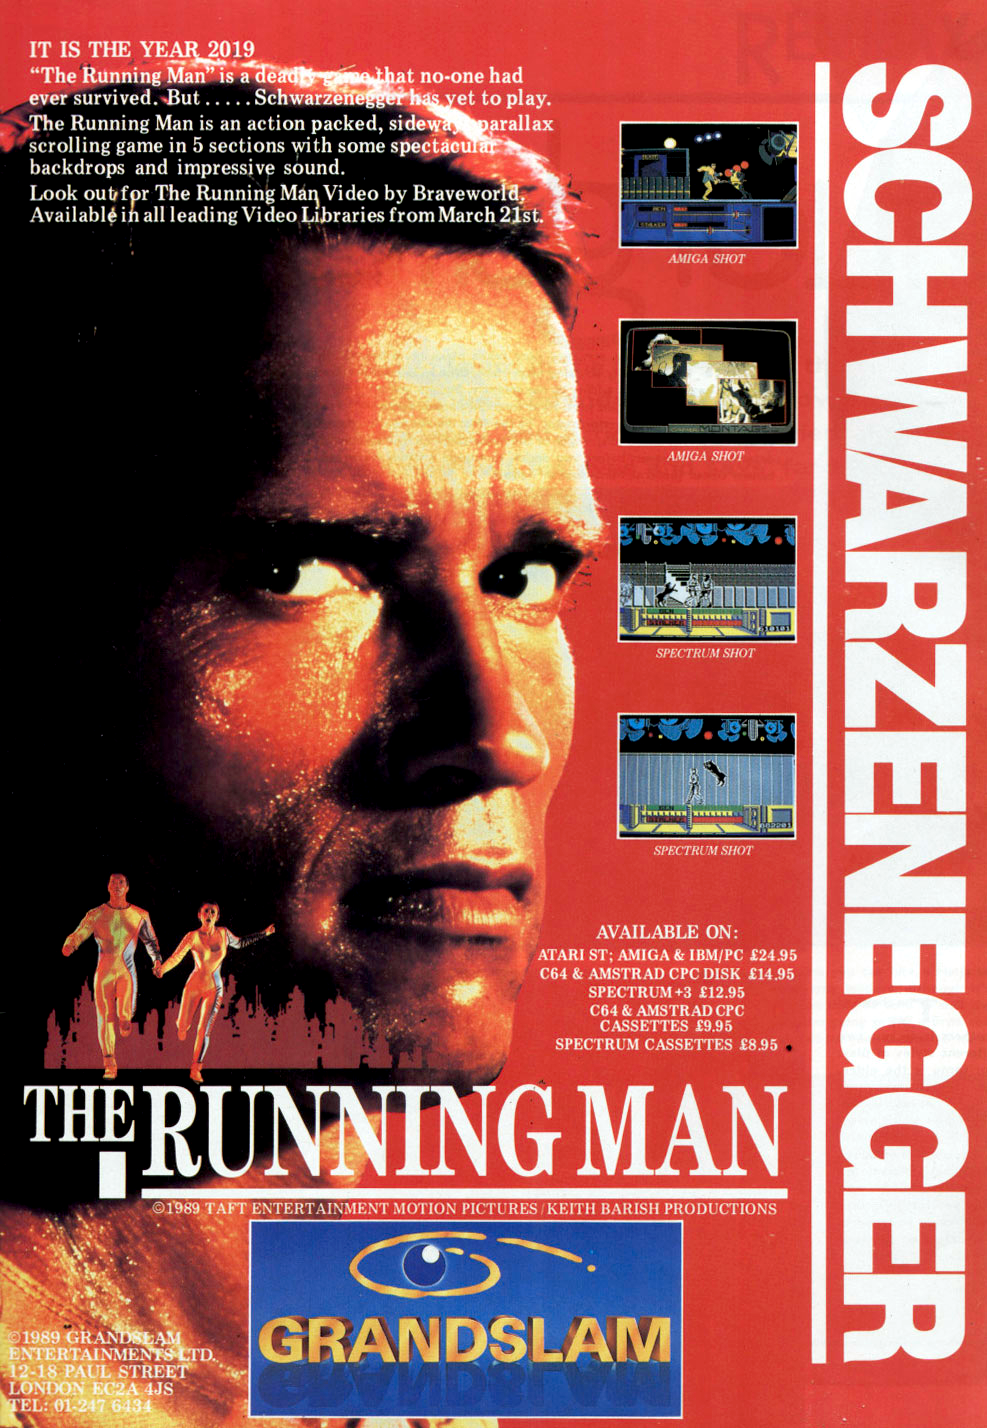 Image For Post | Description In the year 2019 an innocent cop is accused of a crime he did not commit. Ben Richards must face his punishment in the highest rated TV game show in history, The Running Man, a prime time, real life and death struggle for survival! Television is king - you are the ultimate star.   It is time to be the Running Man. Do you have the courage?  Trivia The movie The Running Man is inspired by a novel from Stephen King published in 1982. There are many similarities between this novel and the 1958 novel The Prize of Peril, written by Robert Sheckley. In 1983, the latter was also adapted into a movie, Le Prix du Danger with Gérard Lanvin and Michel Piccoli.   [Despite the advert, the PC version never materialised]  [The MSX version was released in 1990]